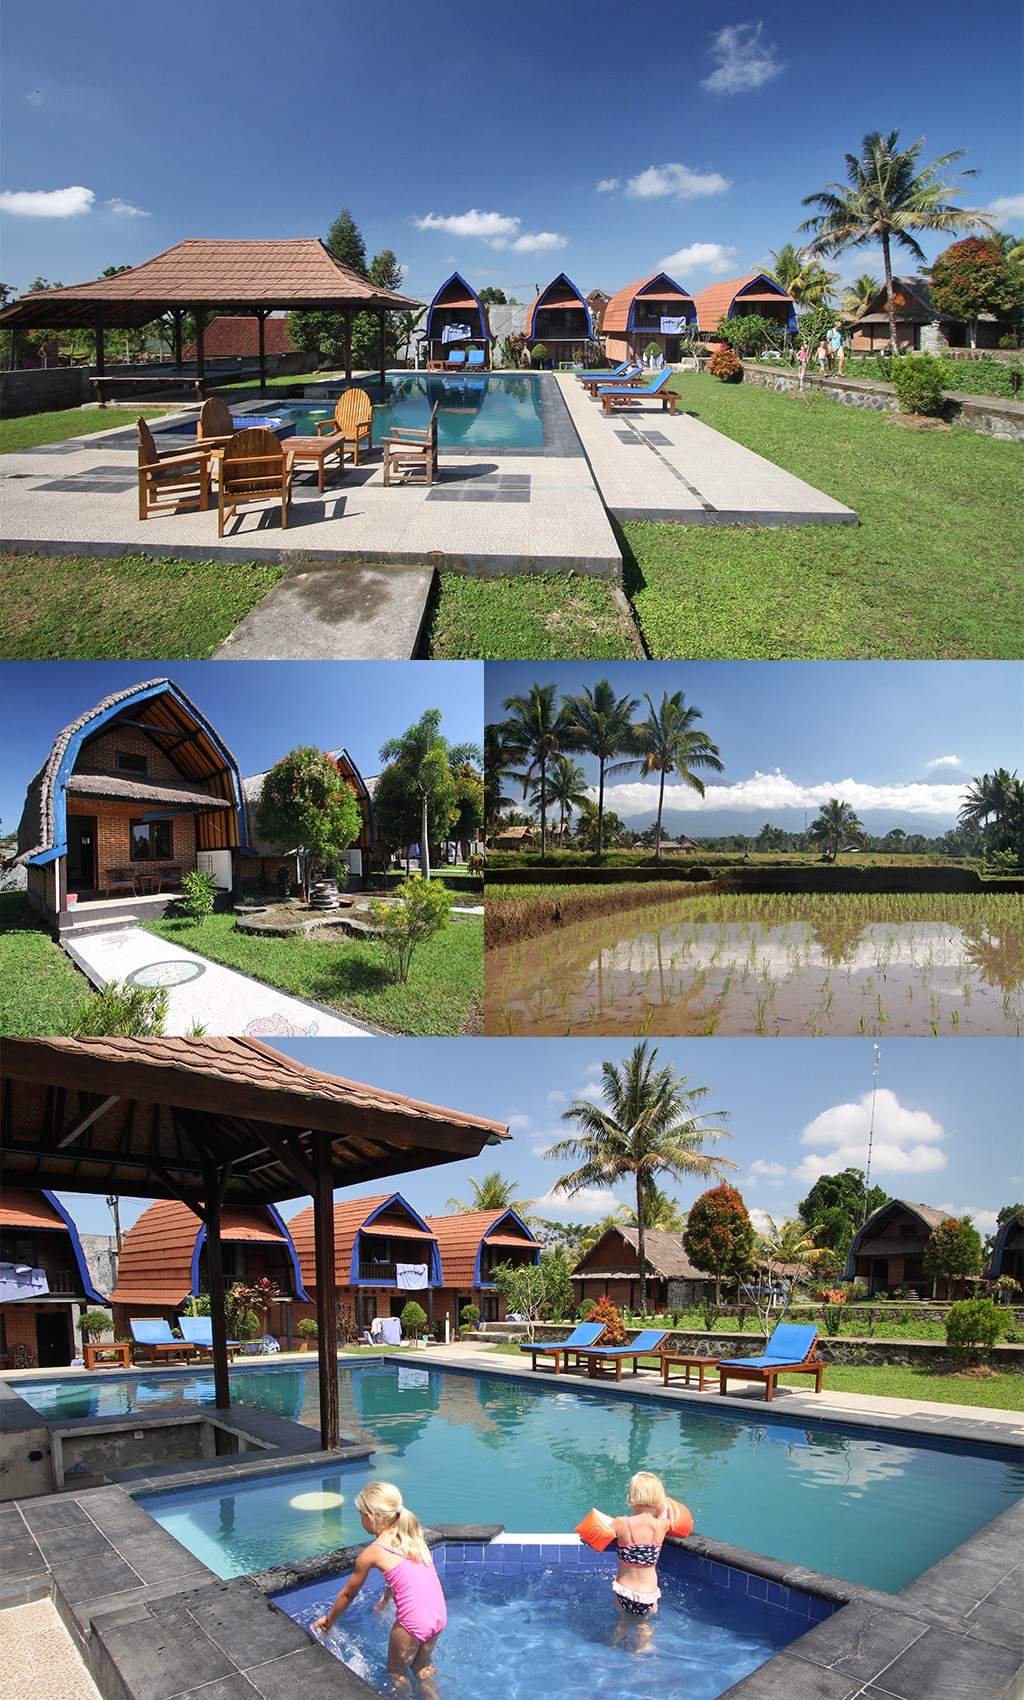 Tetebatu mountain resort